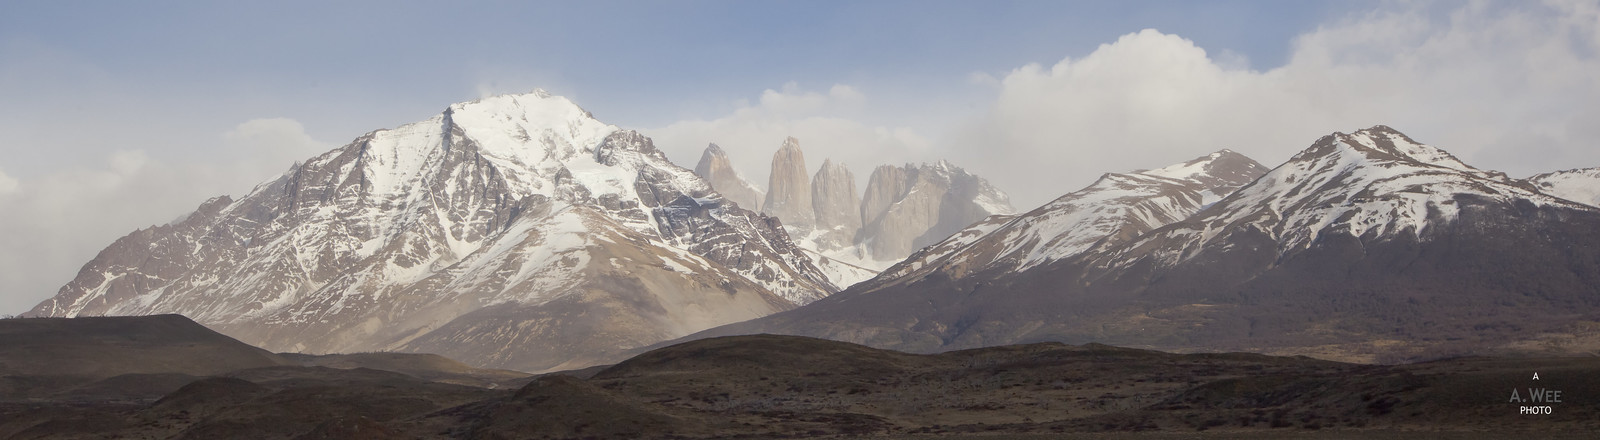 Panorama of Cordillera Paine with the Torres